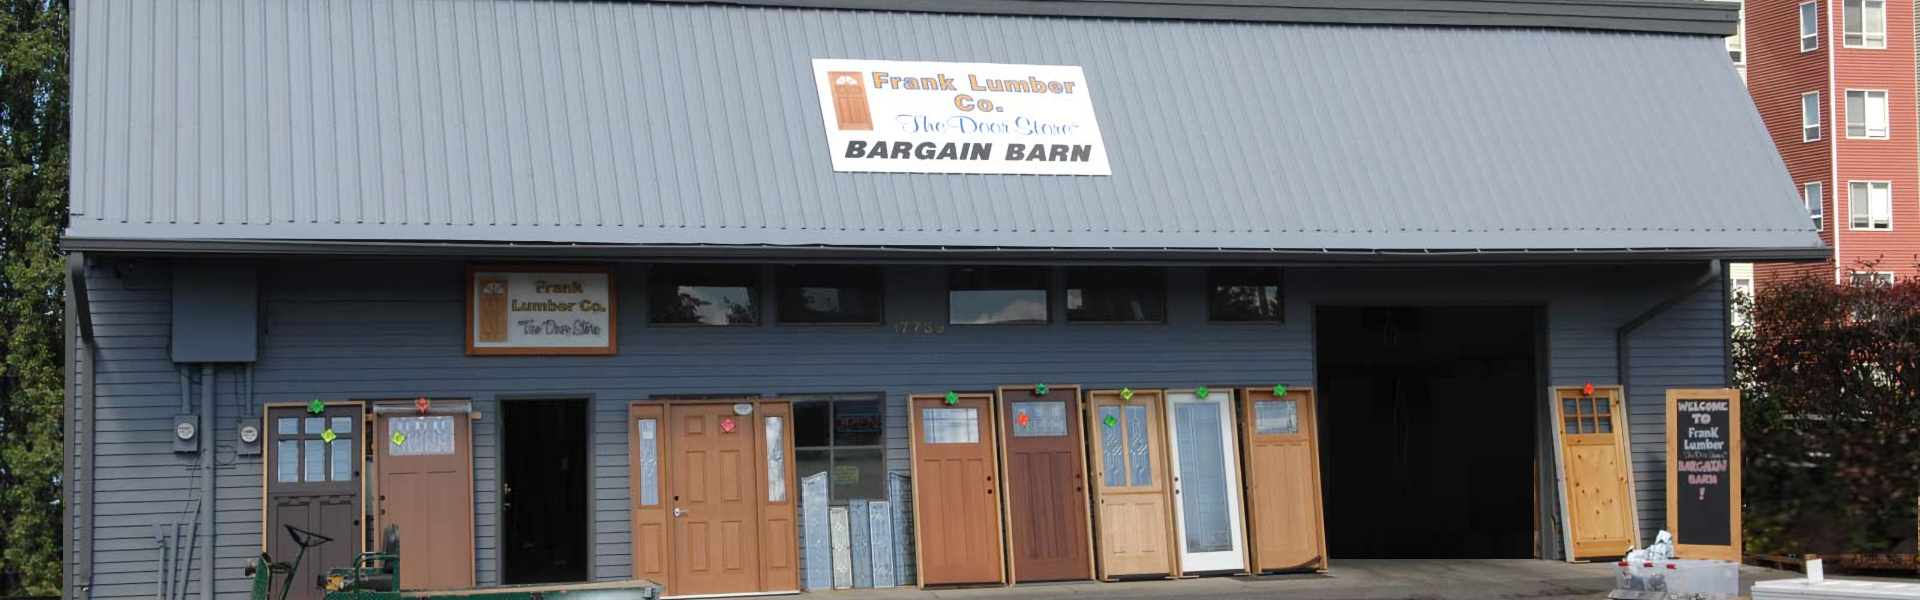 Frank Lumber The Door Store The Bargain Barn Door Deals